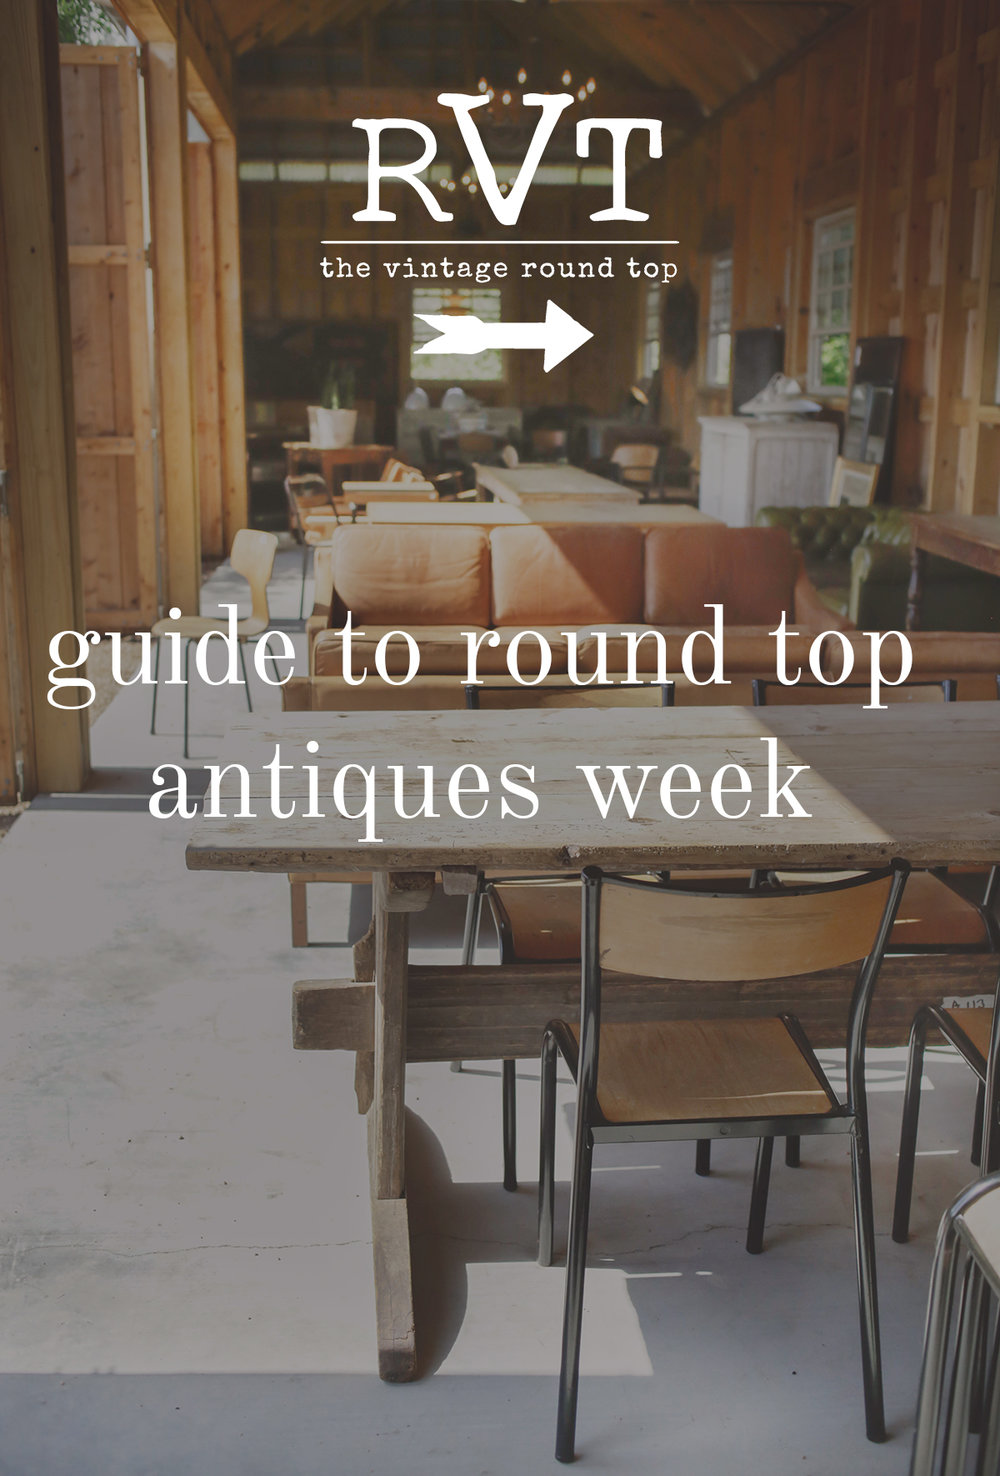 Guide+to+Round+Top+Antiques+Week+%2F+The+Vintage+Round+Top.jpeg